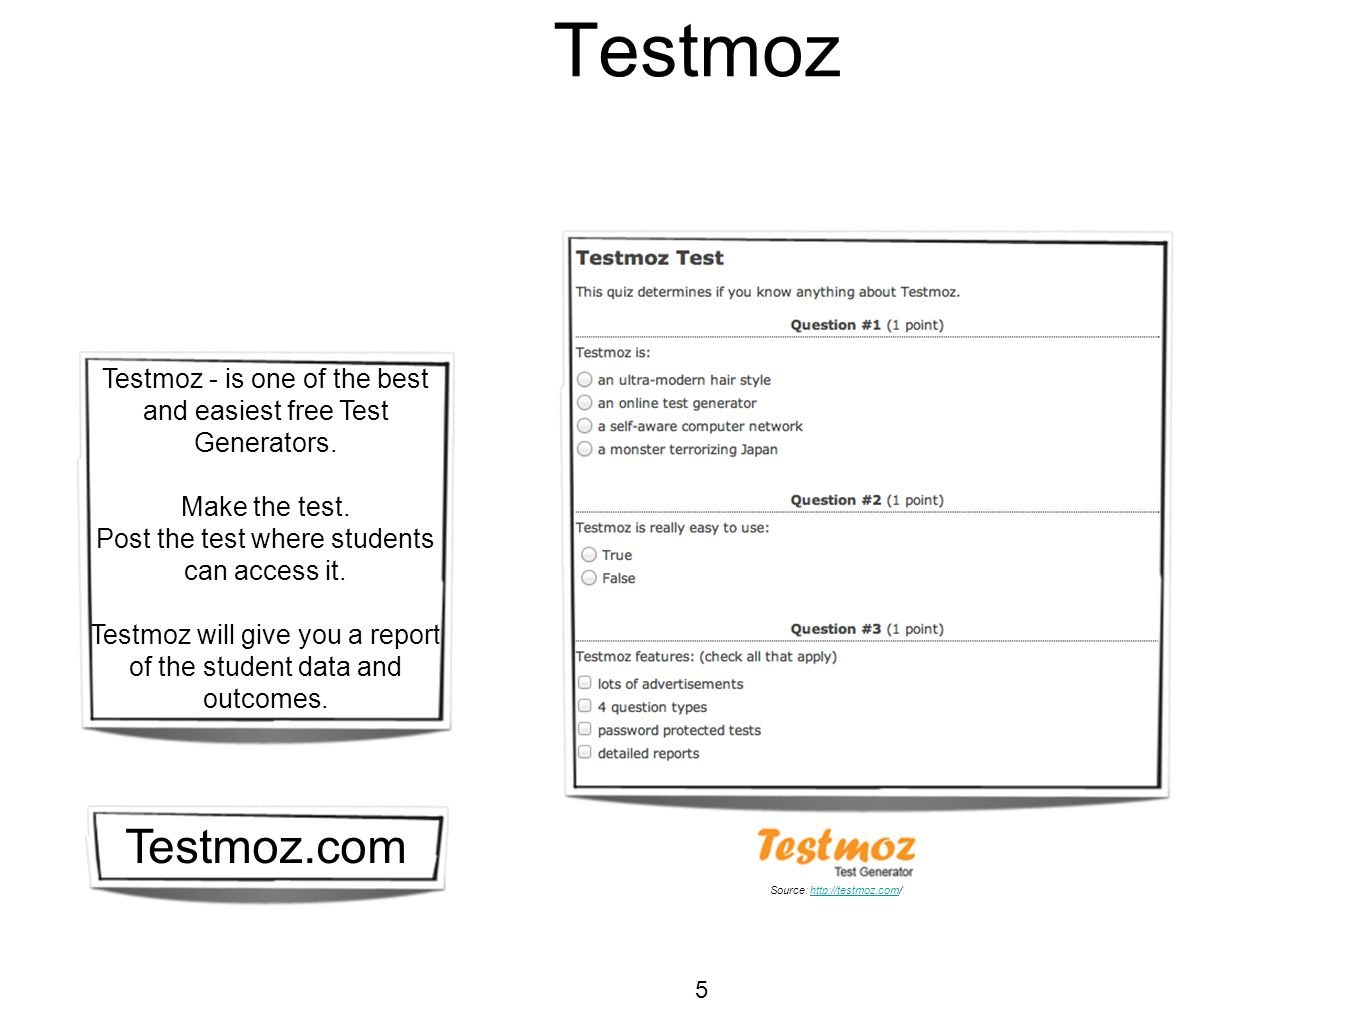 Testmoz Testmoz - is one of the best and easiest free Test Generators. Make the test. Post the test where students can access it.